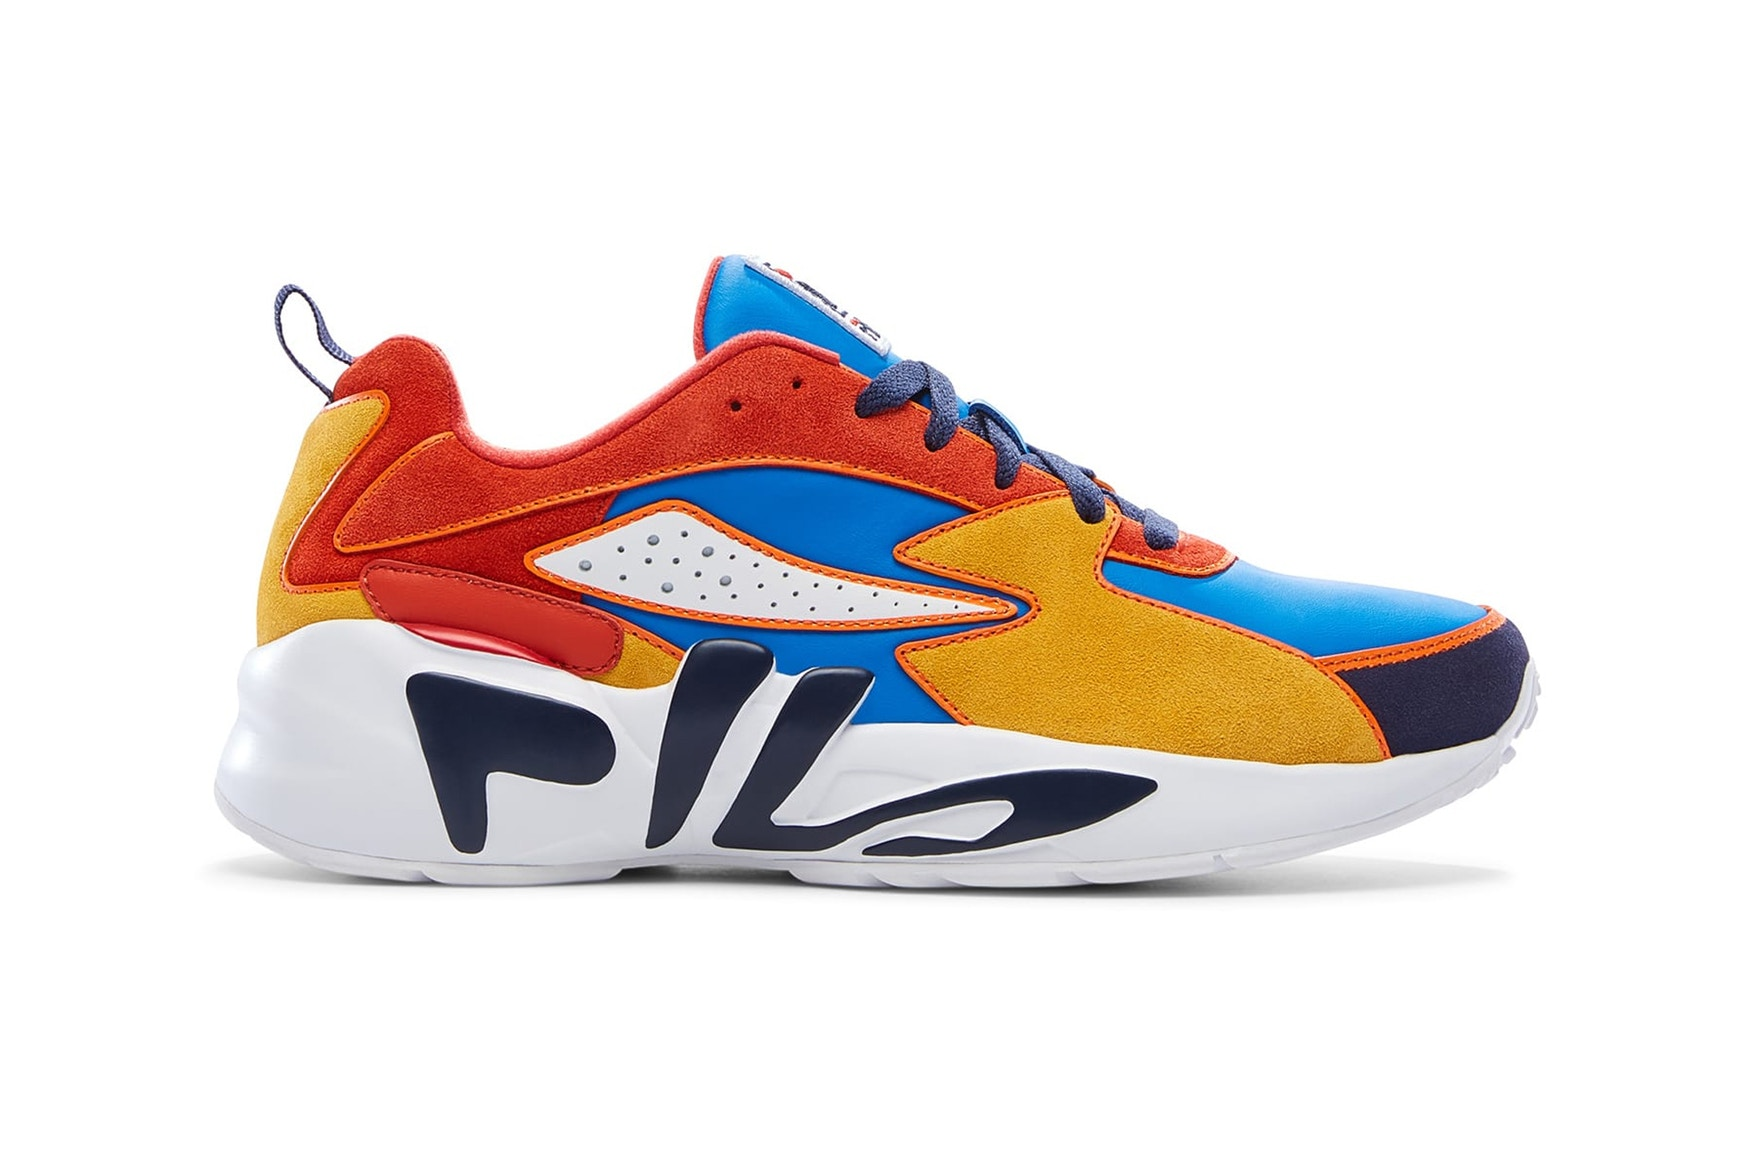 fila-revives-the-classic-mindblower-with-over-40-limited-edition-collaborations-38